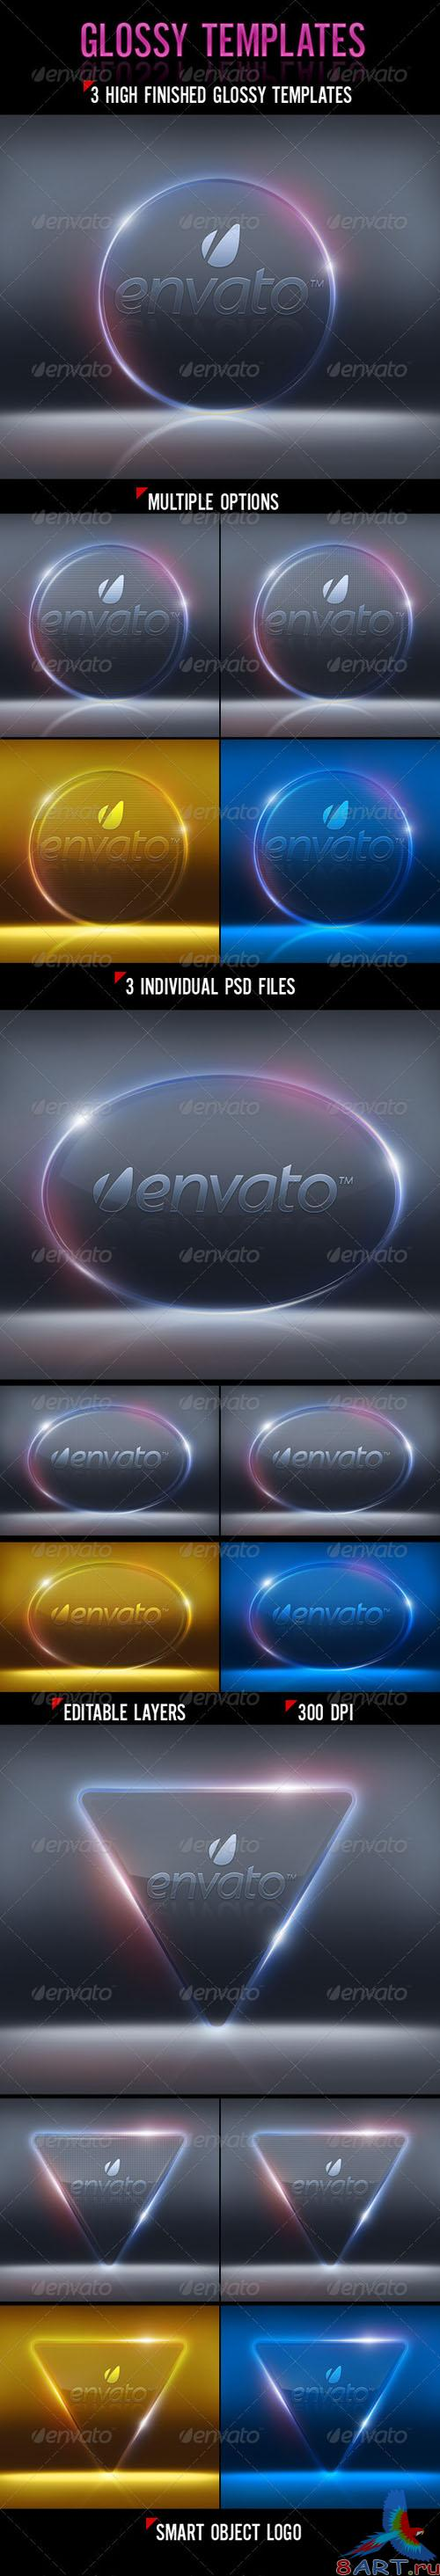 GraphicRiver - Glossy Templates 2727669